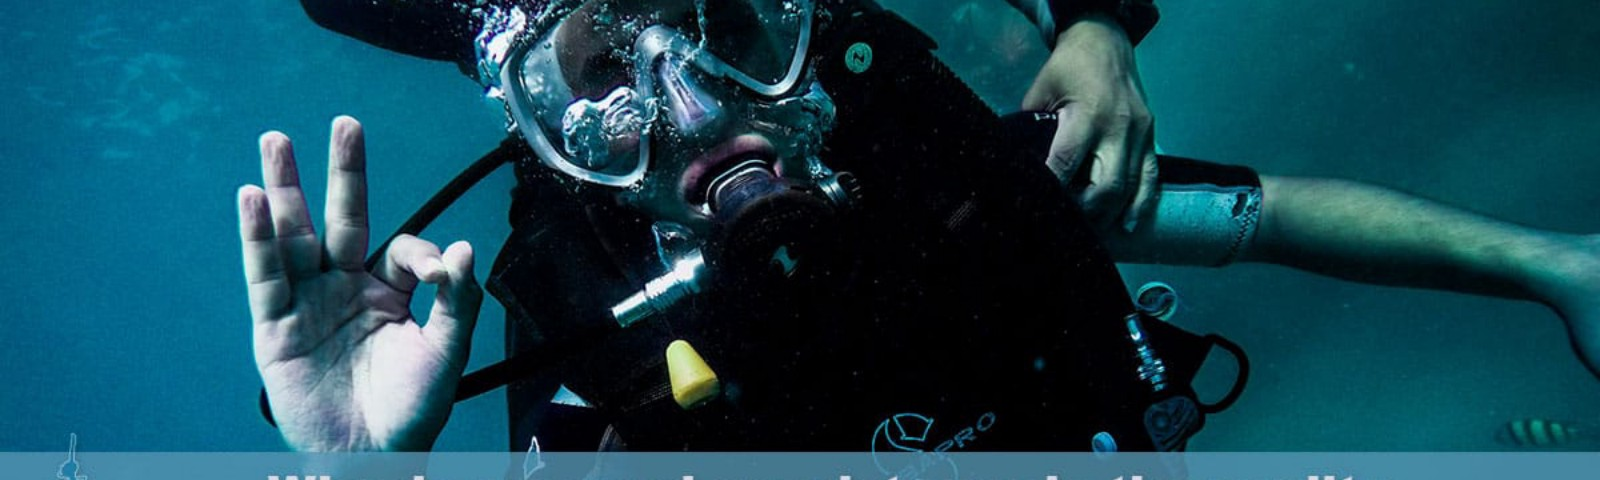 Defining and using quality assurance and branding for customer retention and satisfaction in the scuba diving industry